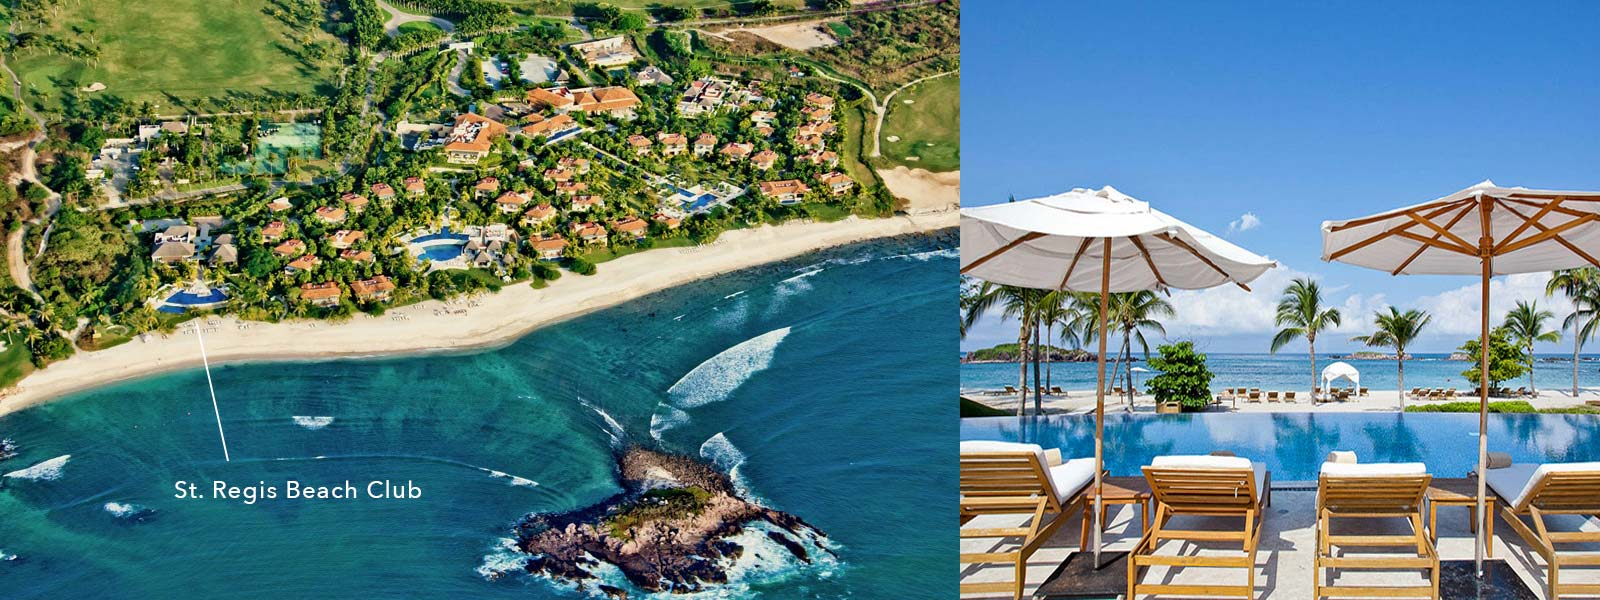 The St. Regis Beach Club at the Punta Mita Resort, Riviera Nayarit, Mexico